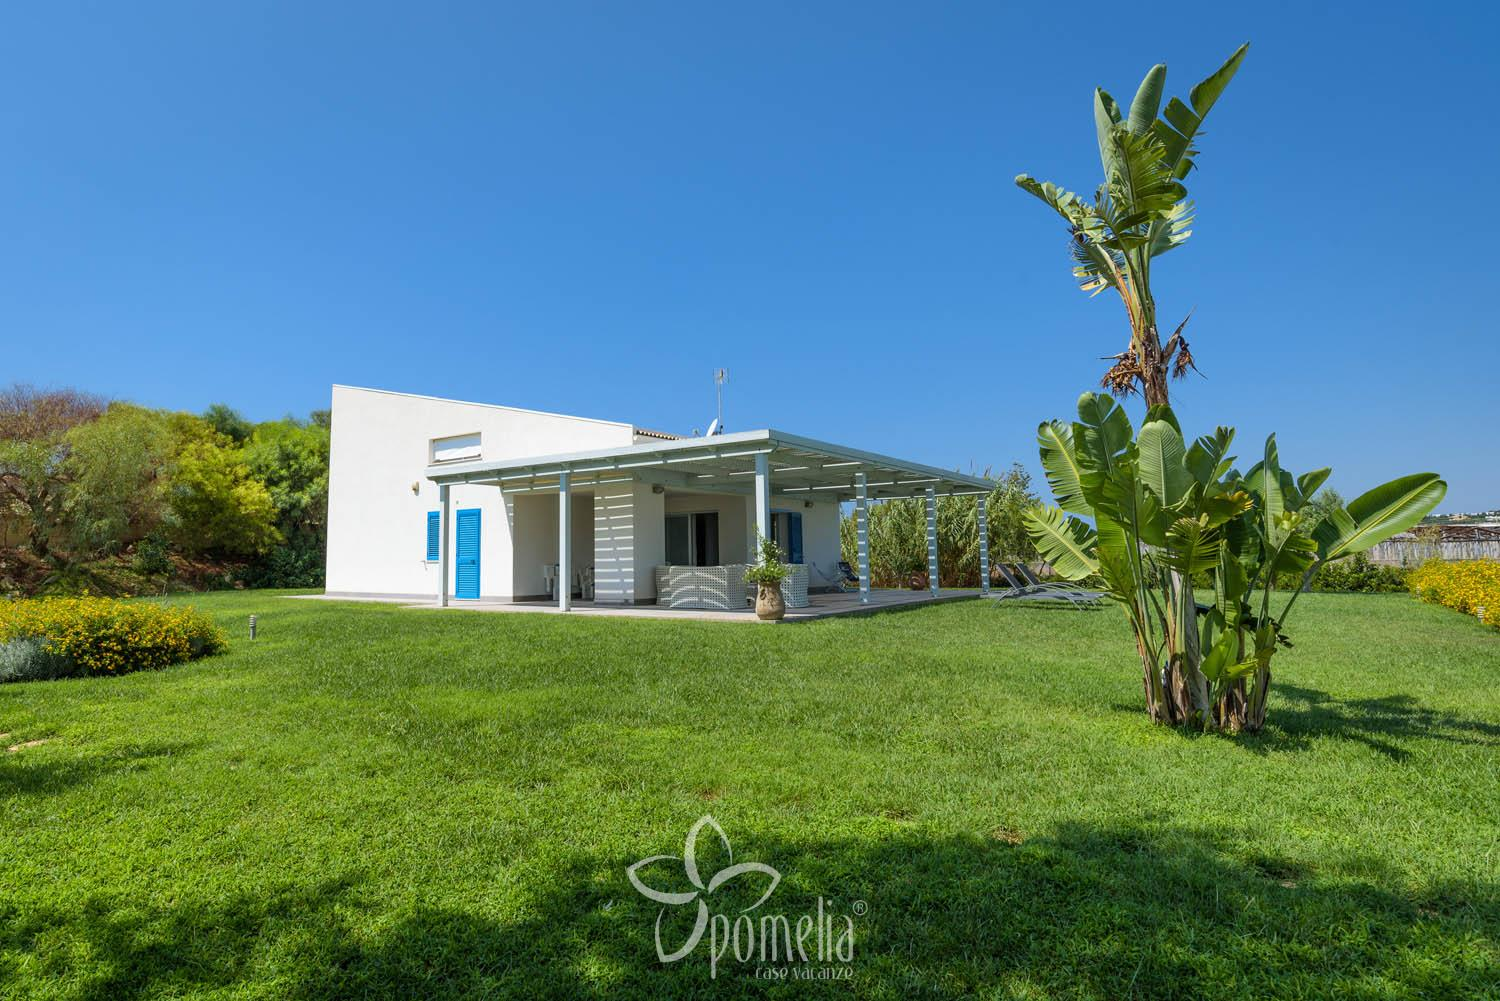 Dafne, villa with pool and garden 300 meters from the beach of Caucana - Overview